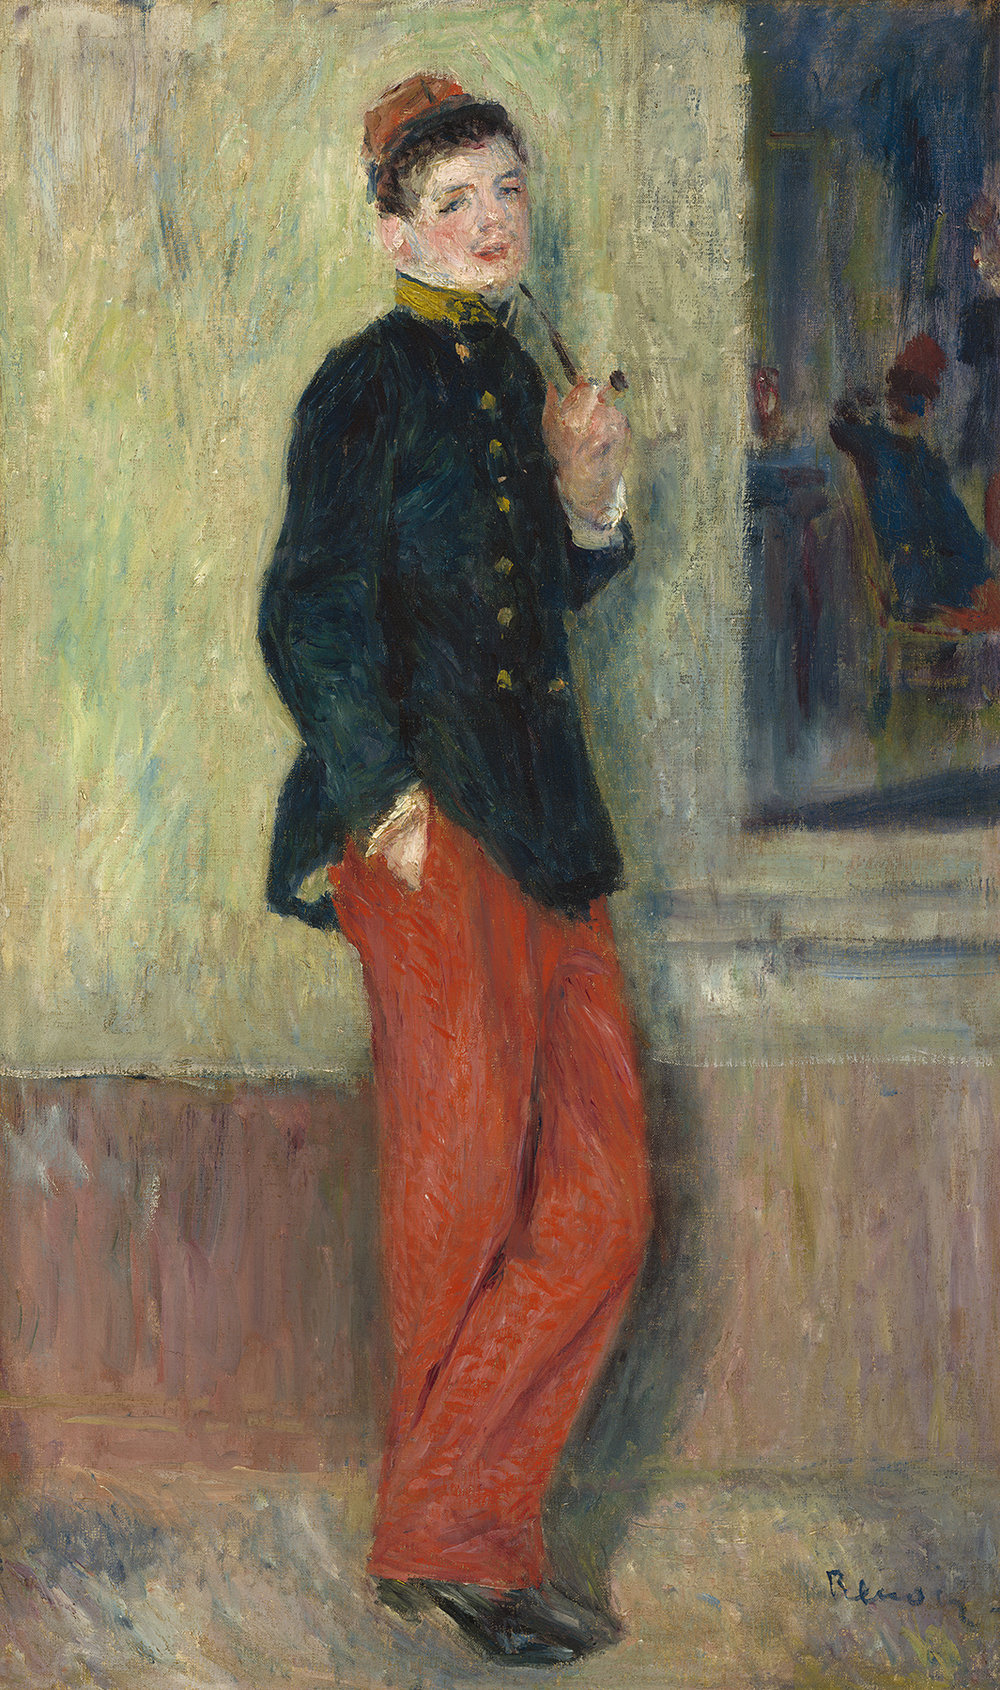 Pierre-Auguste Renoir,  The Young Soldier (Le jeune militaire) , c. 1880, oil on canvas, National Gallery of Art, Washington, Collection of Mr. and Mrs. Paul Mellon, 2014.18.46